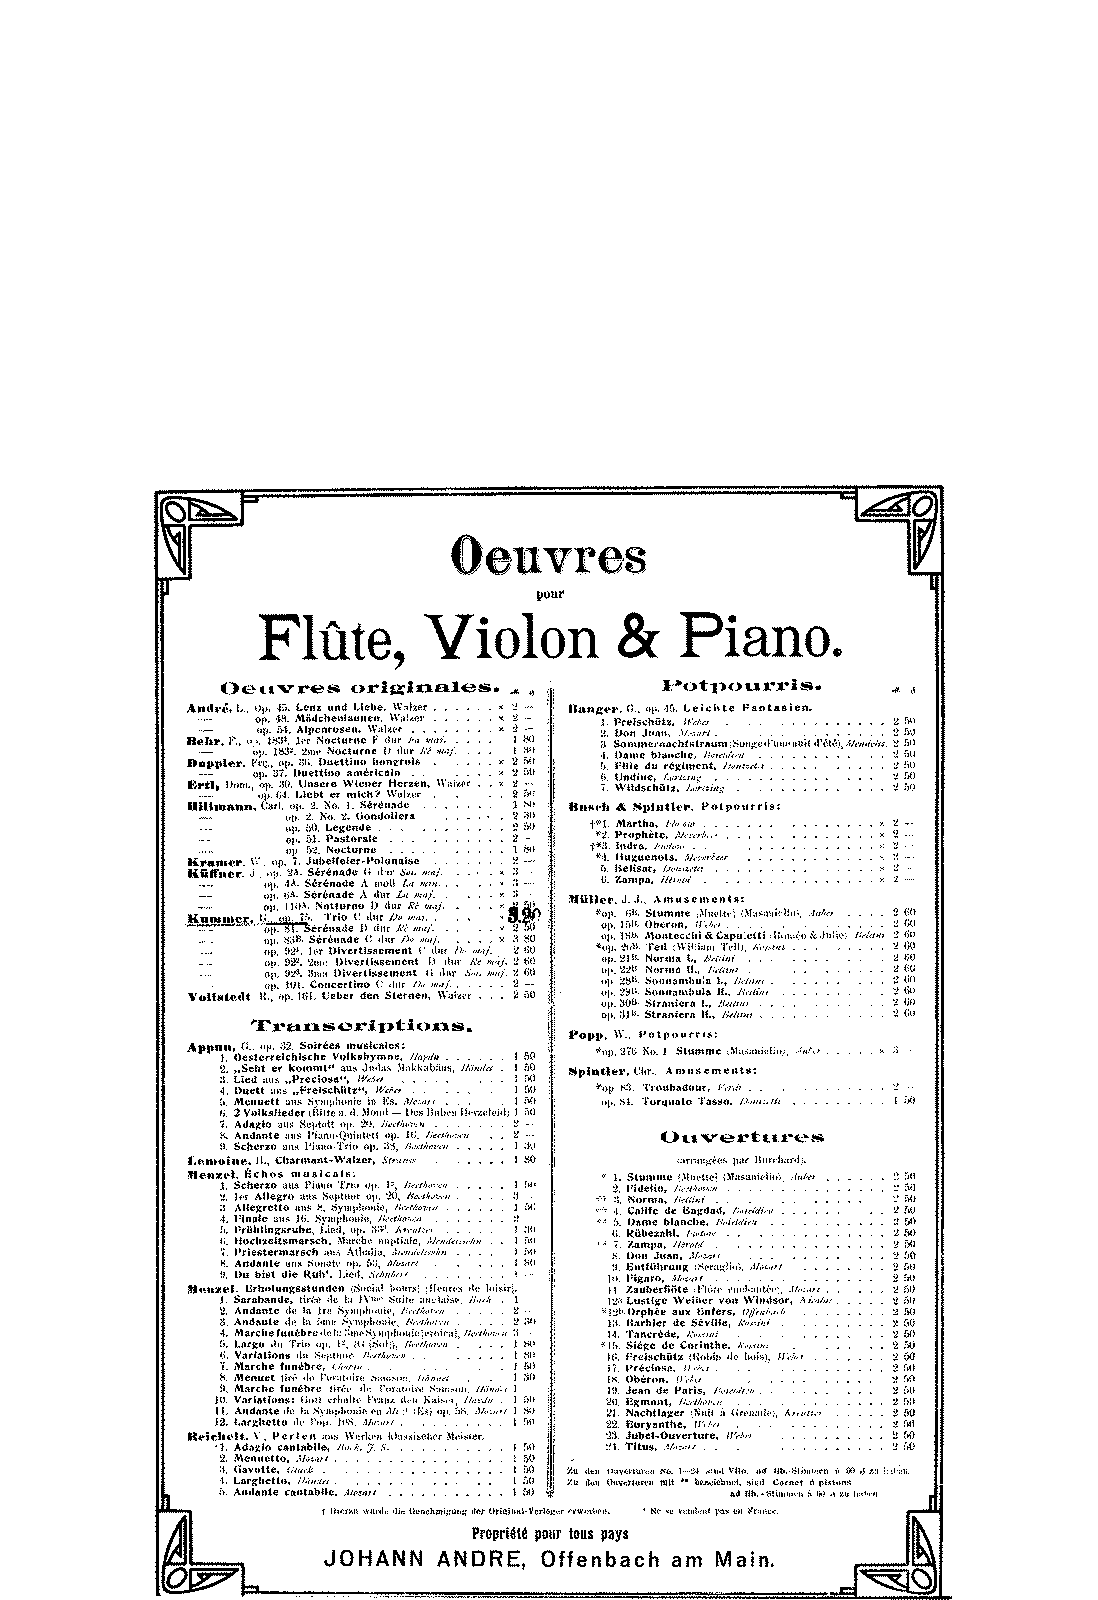 SIBLEY1802.8245.c3be-39087009012446piano.pdf